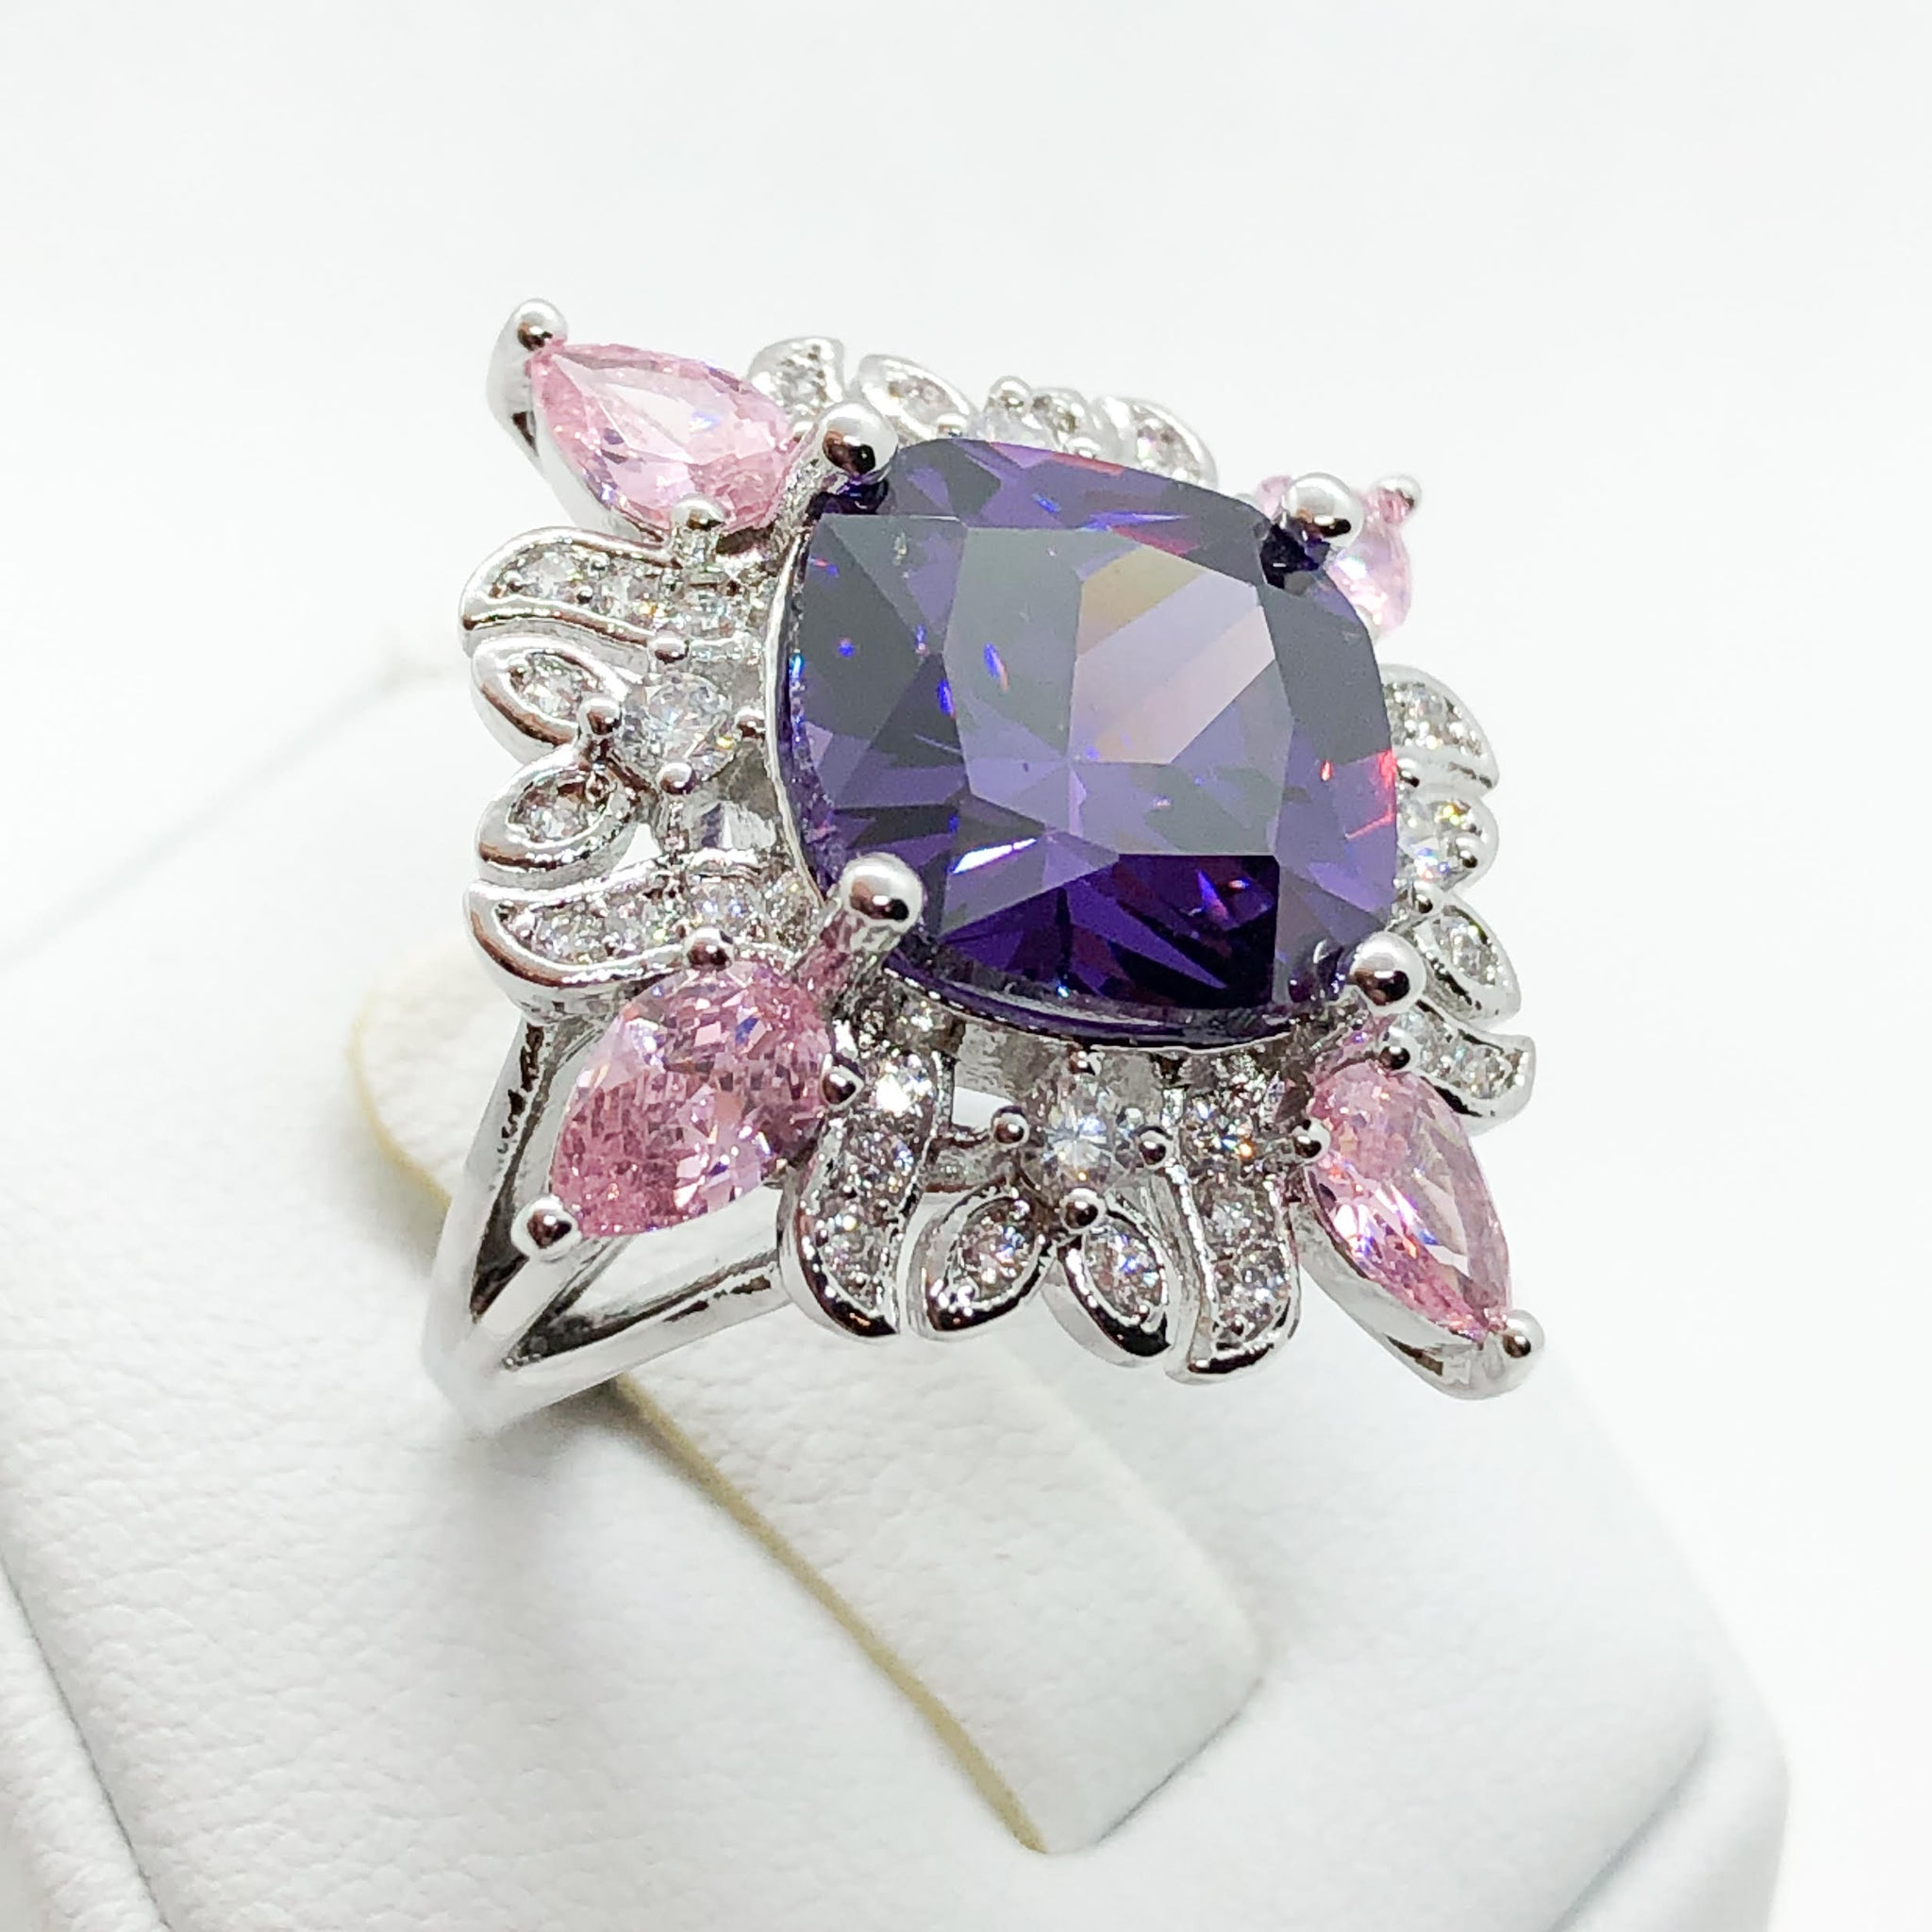 ID:R6963 Women 18K White Gold GF Fashion Jewelry Cool Big Amethyst Multi-color stones Cocktail Ring